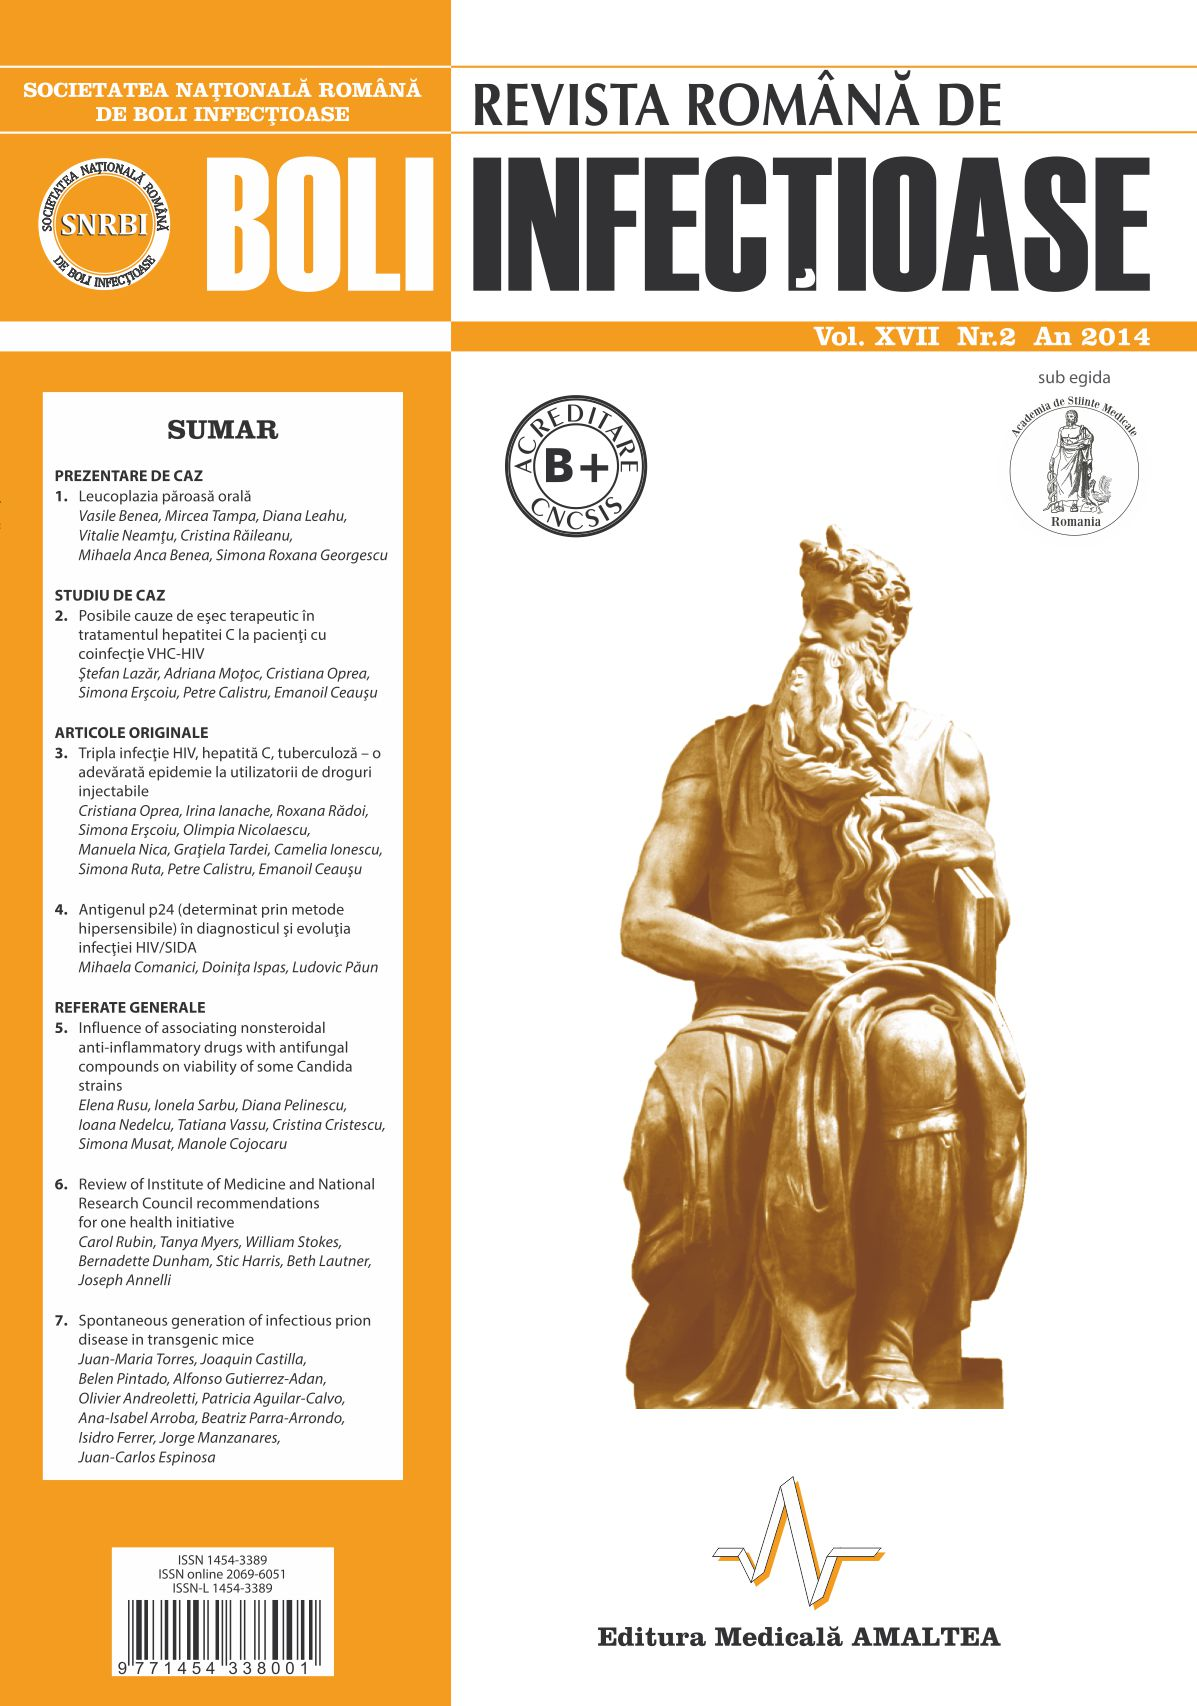 Revista Romana de Boli Infectioase | Vol. XVII, No. 2, 2014